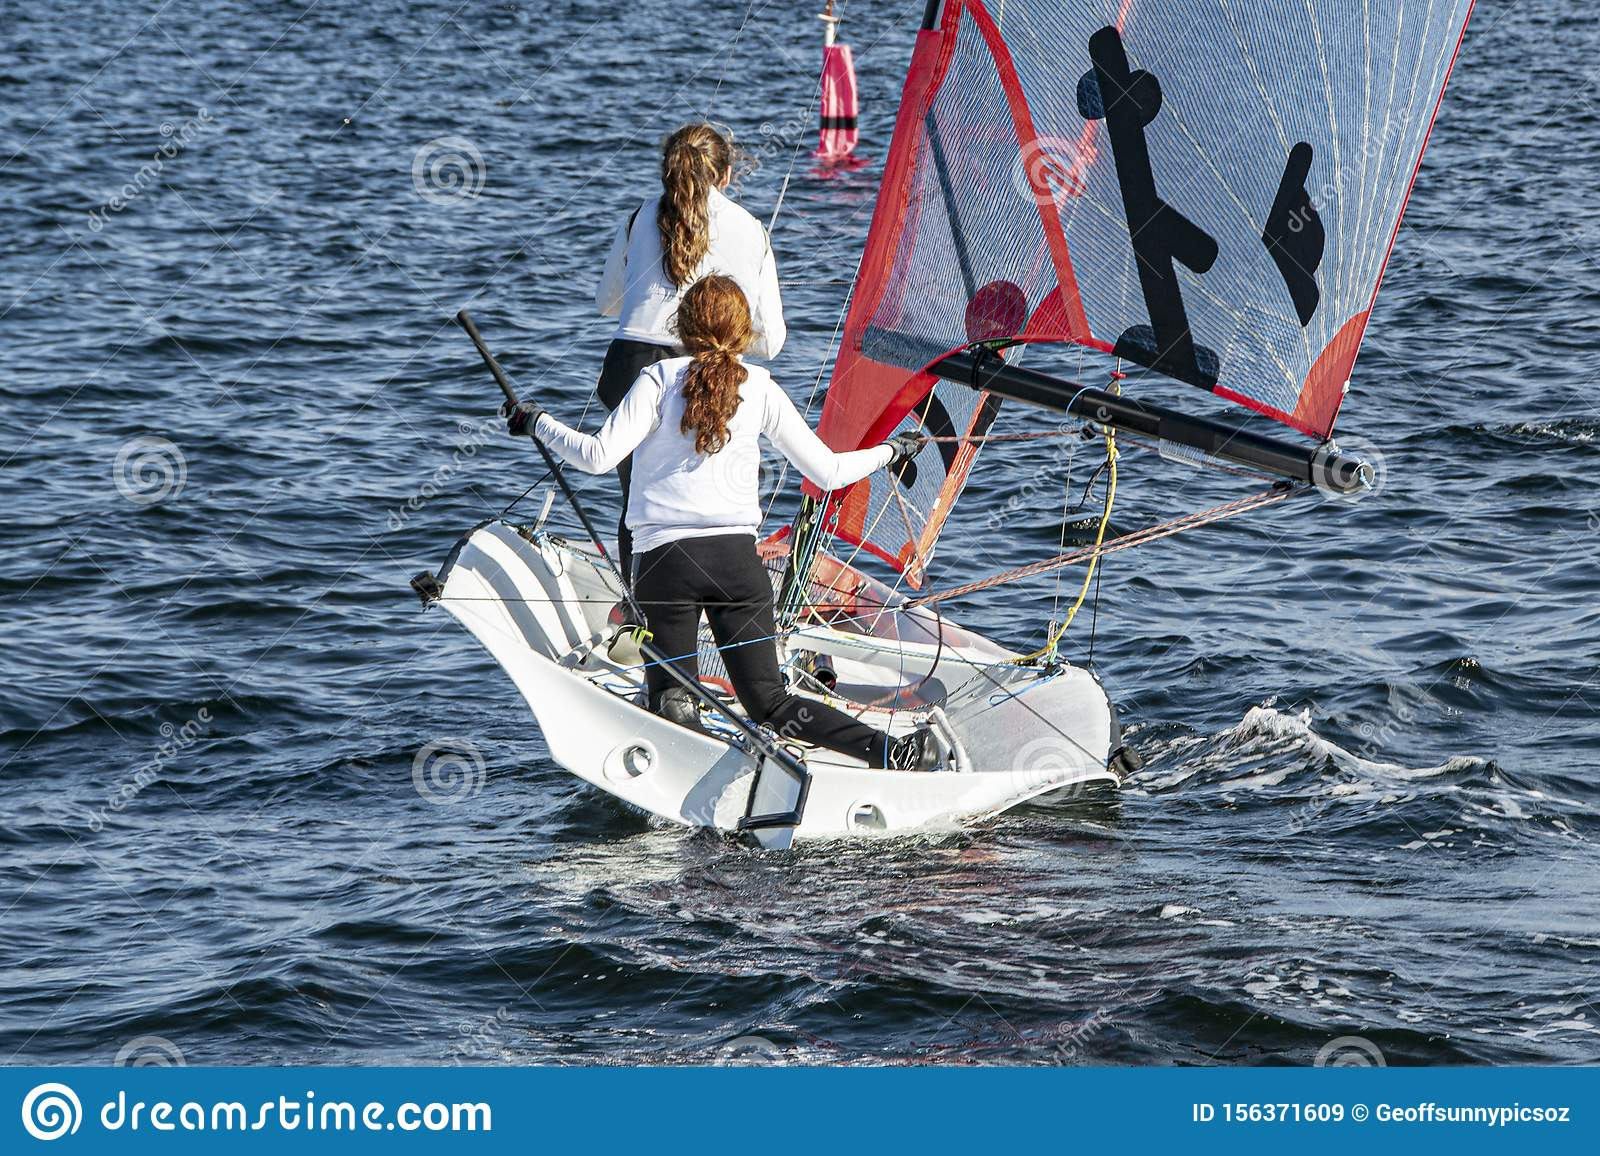 Two Girls Sailing Small Sailboat With Long Red Hair Viewed